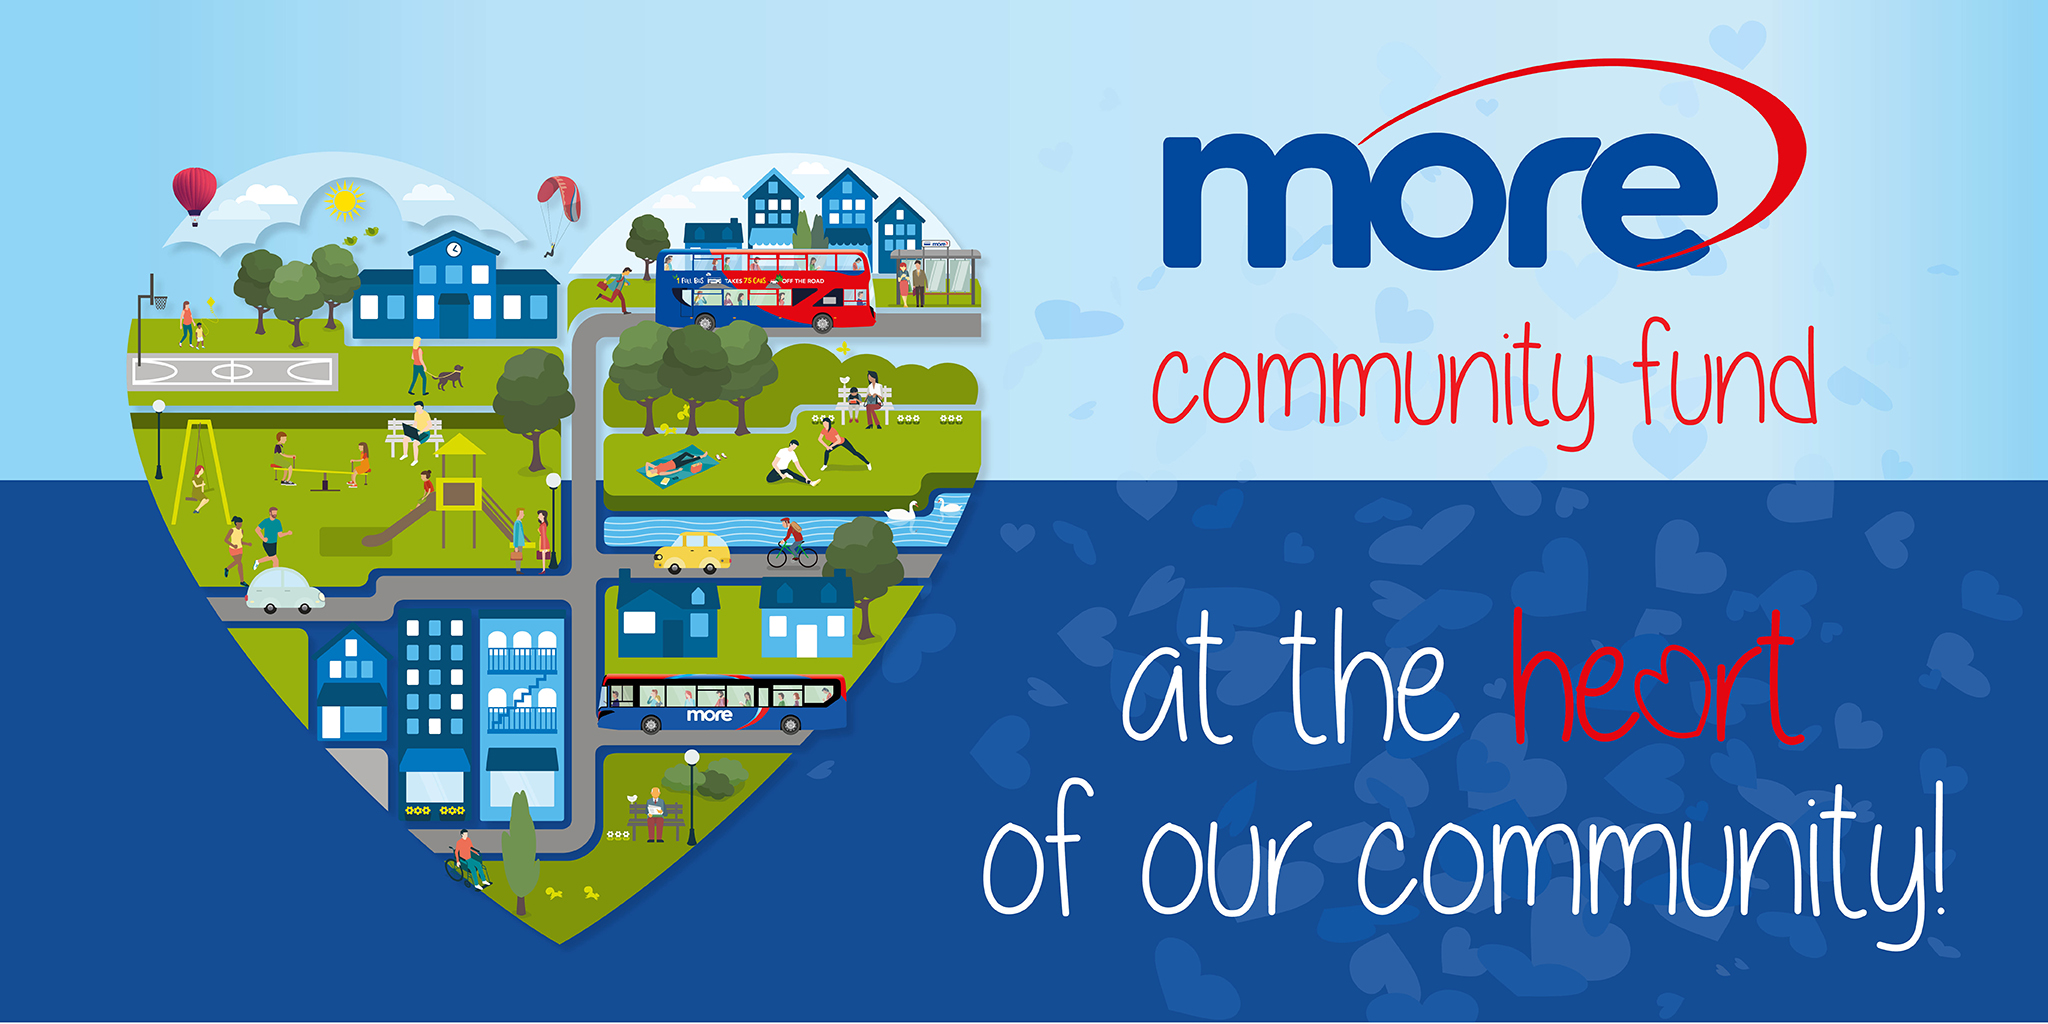 more community fund - at the heart of our community